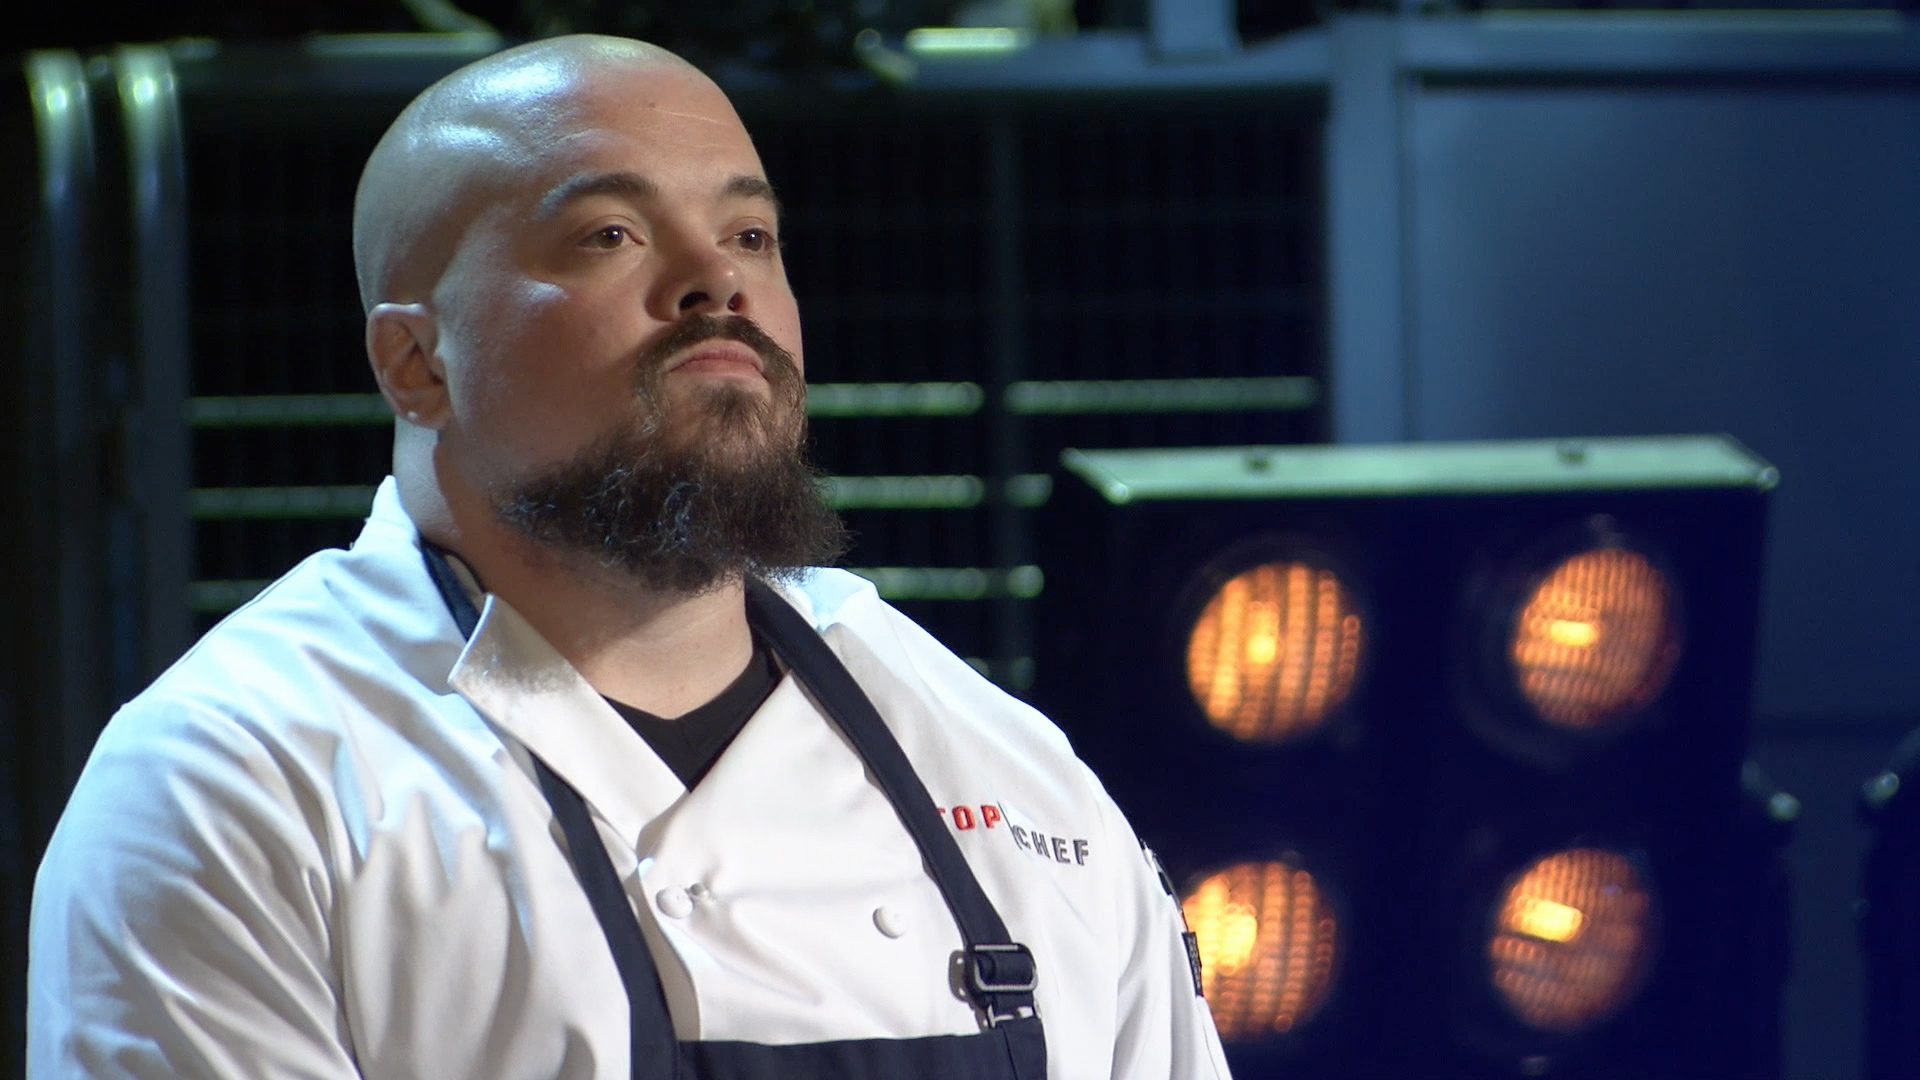 Top Chef Exit Interview Part 2: Ep 14